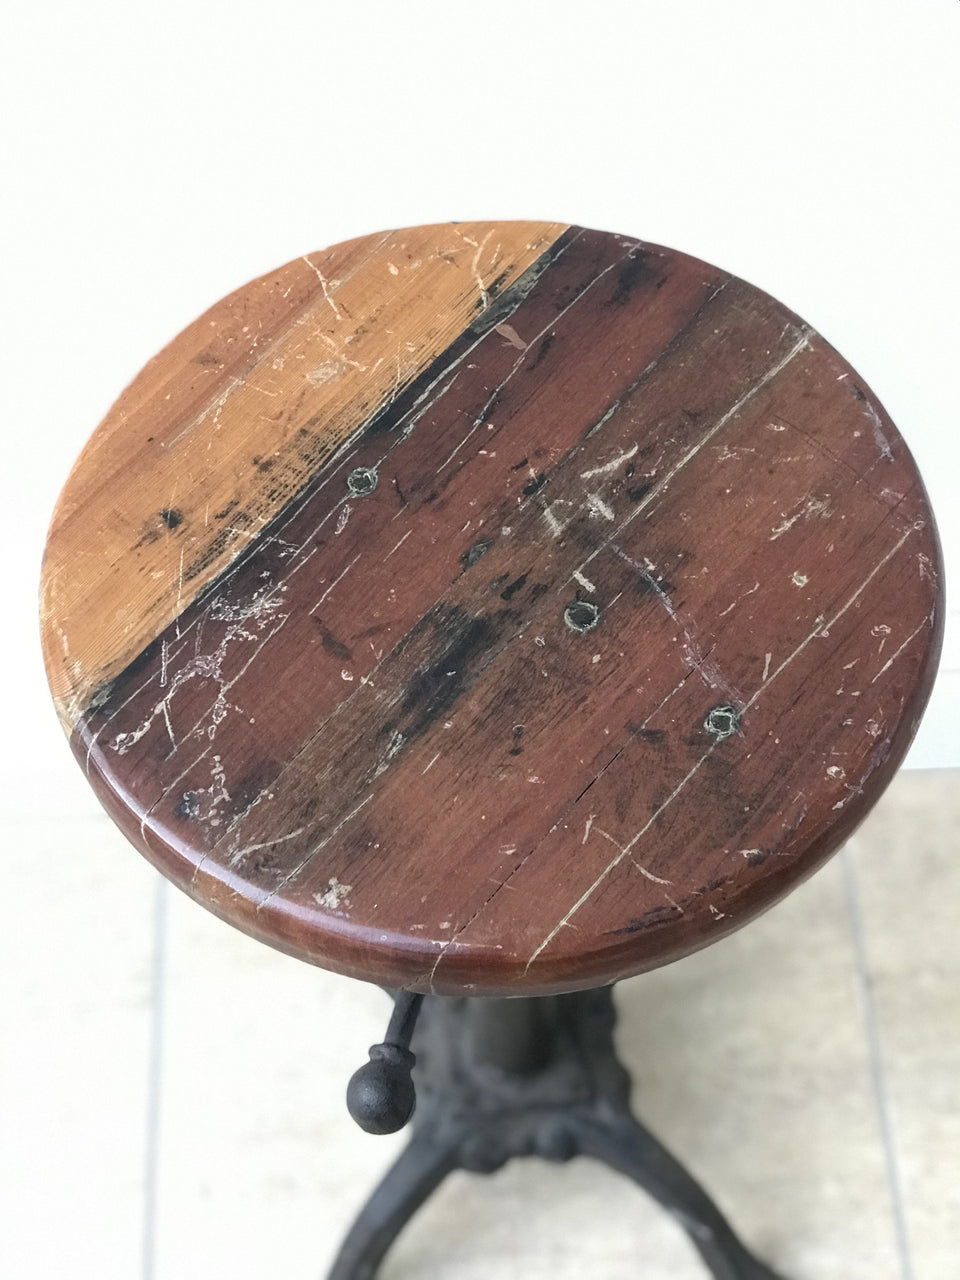 Adjustable Industrial Stool with a Great Top